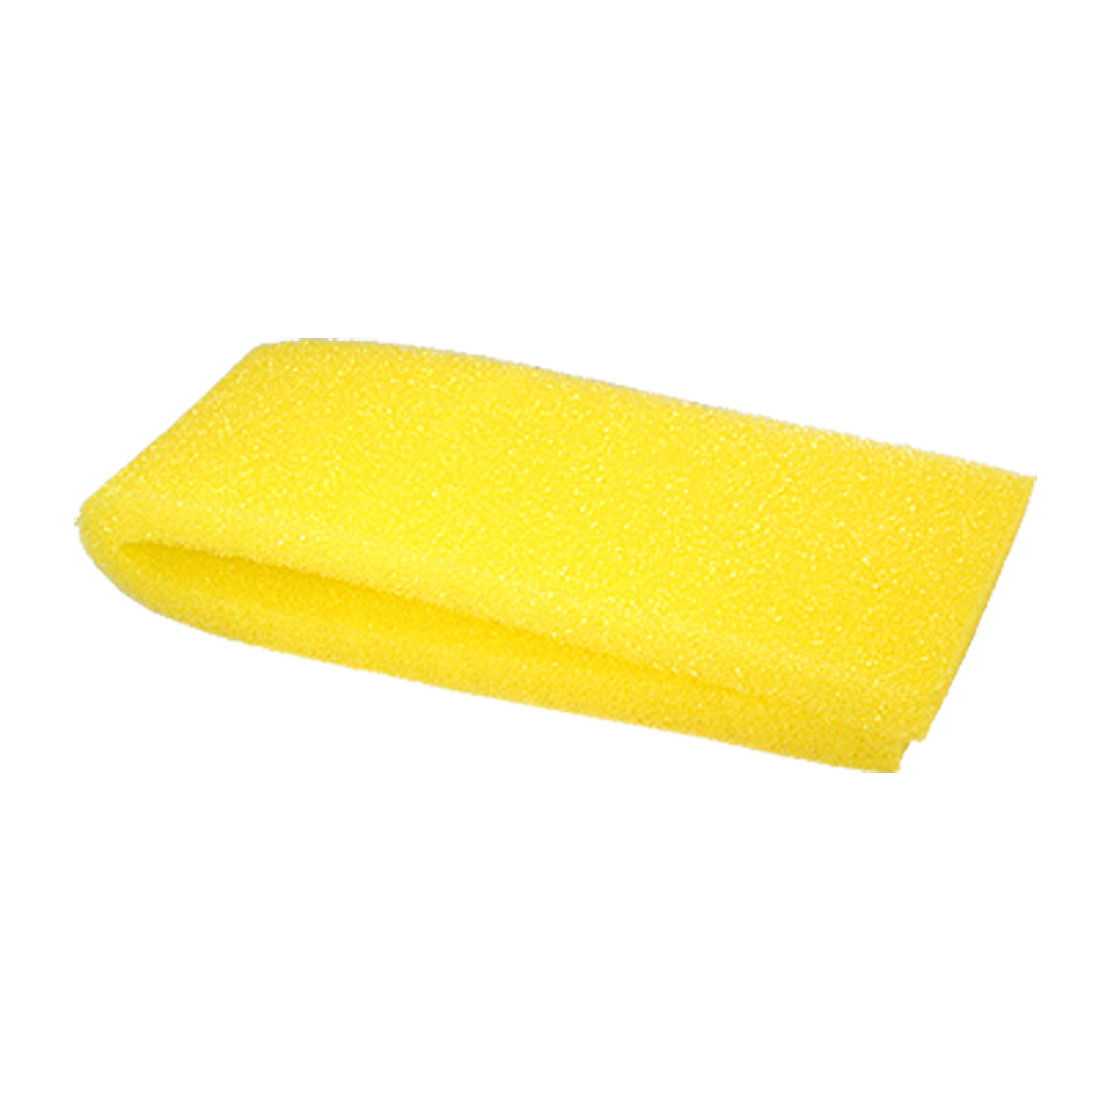 Yellow Biochemical Aquarium Sponge for Fish Tank